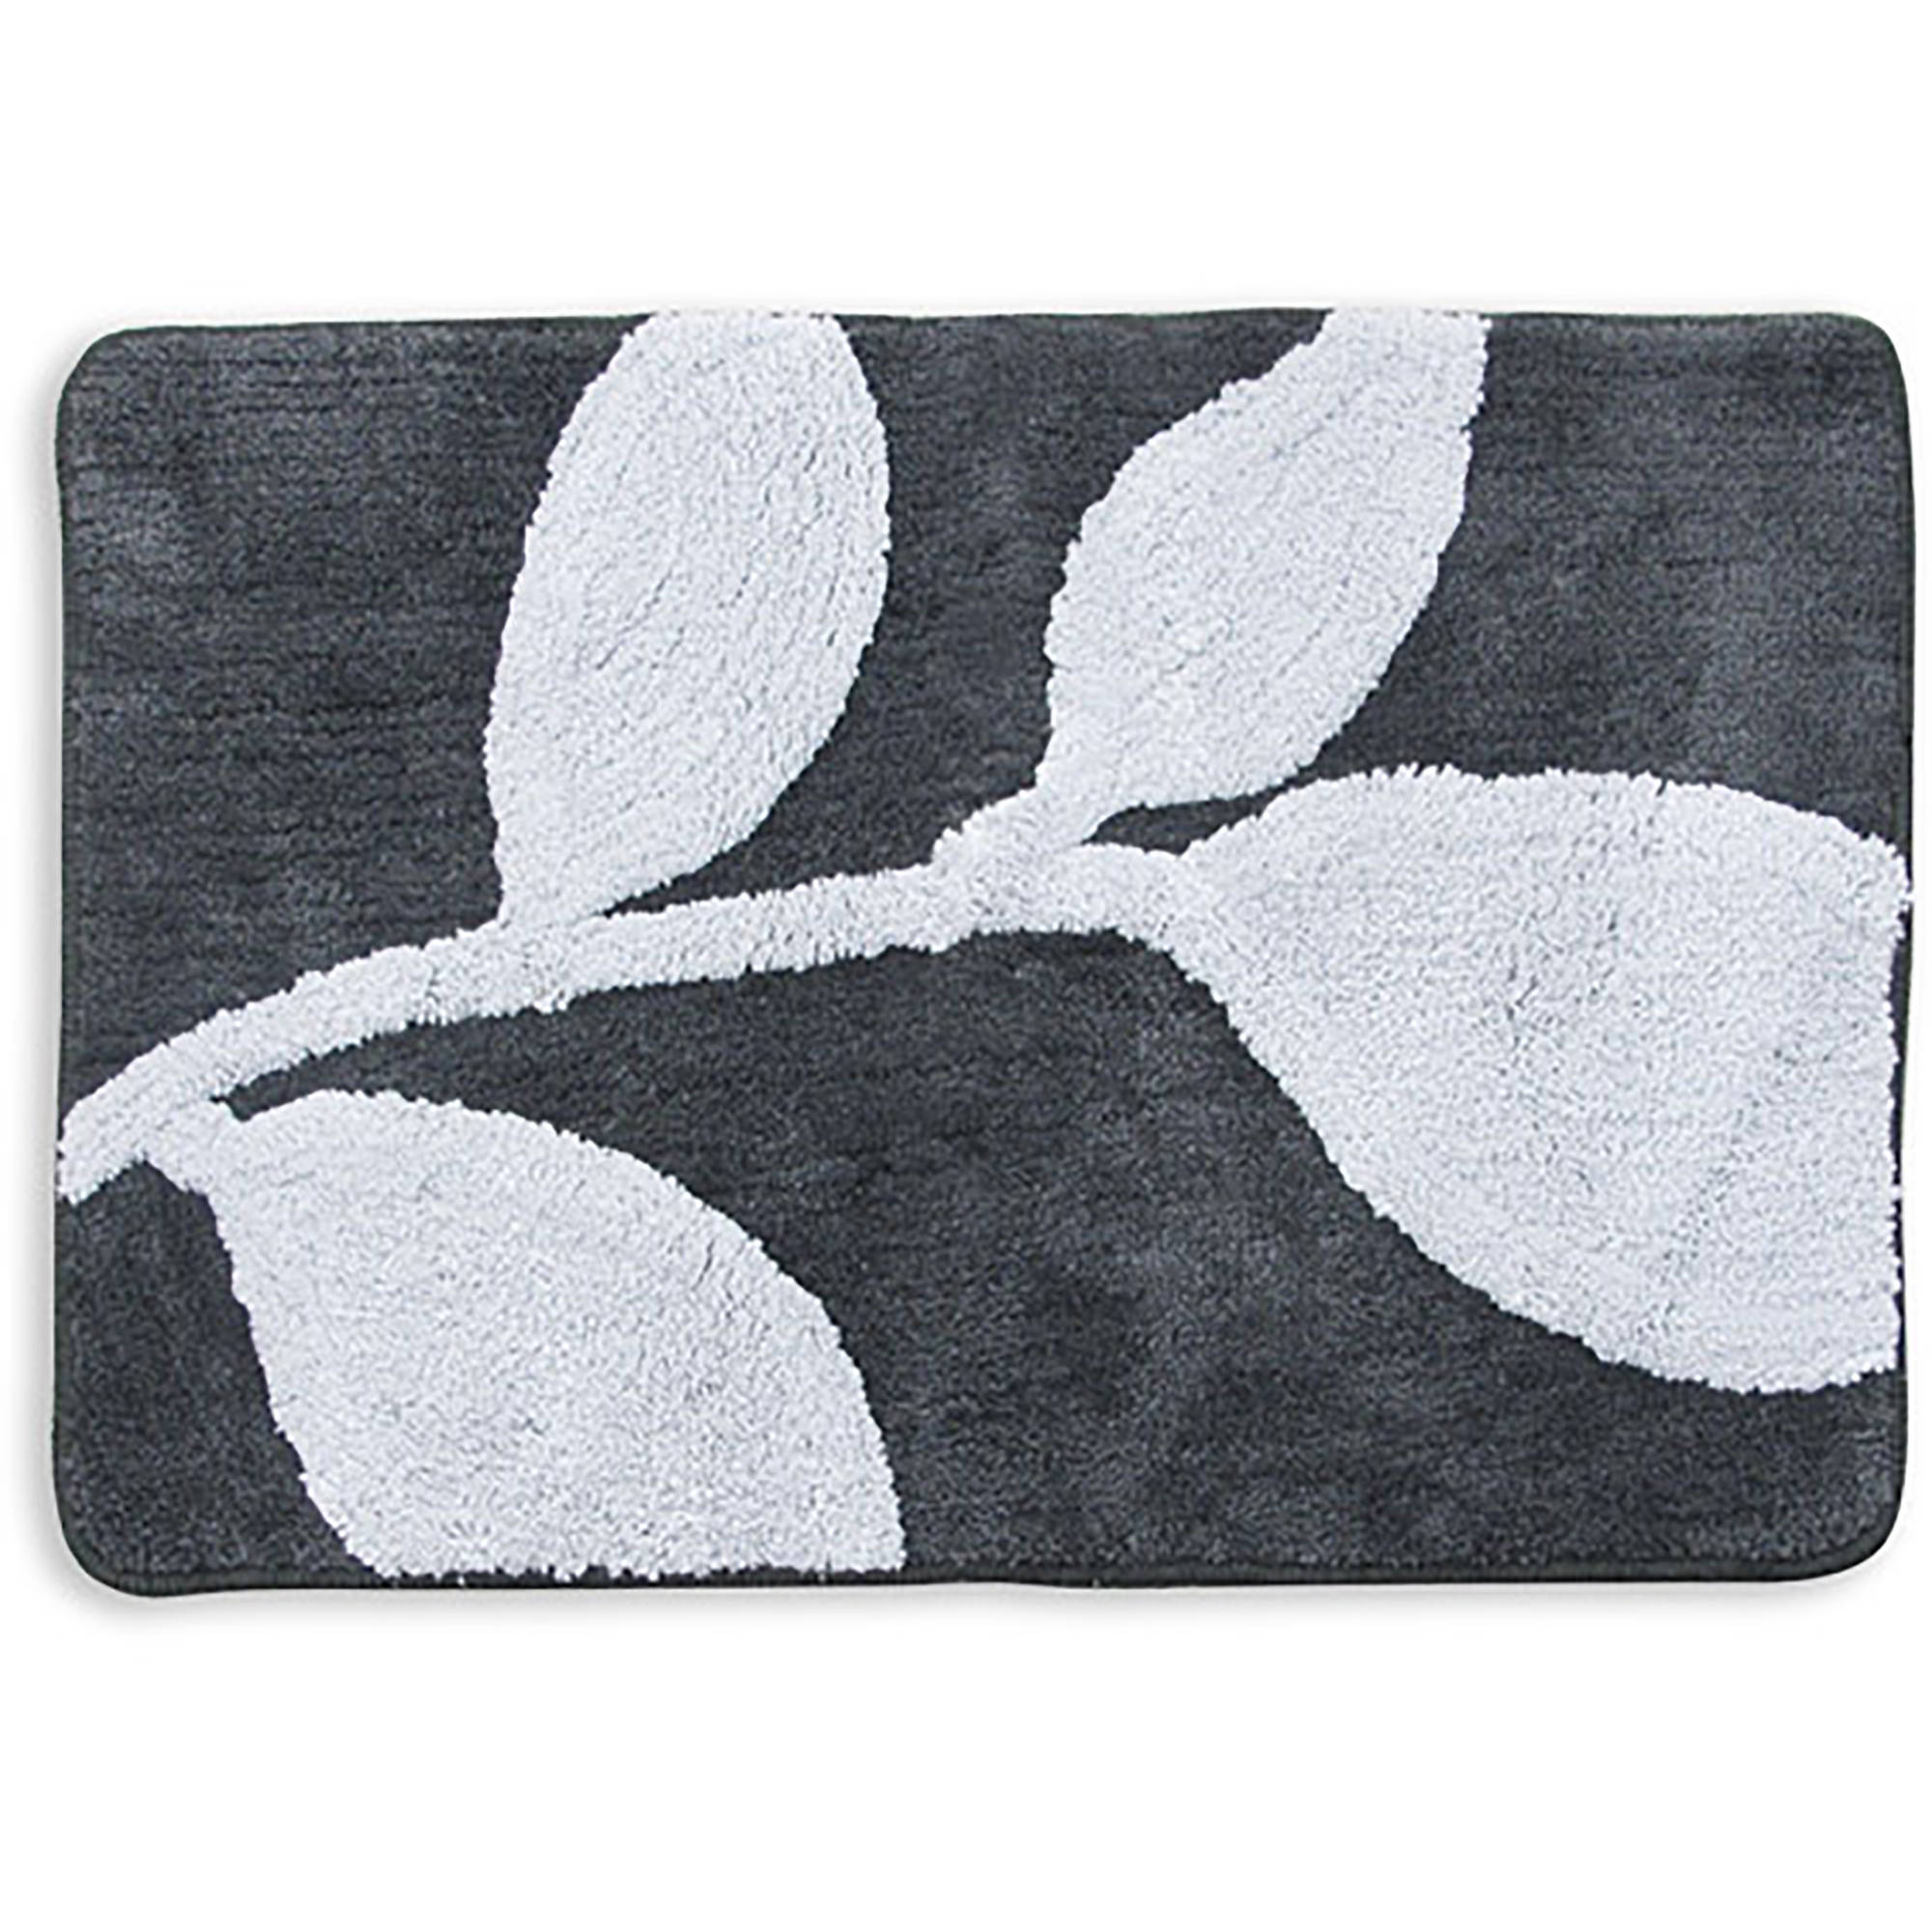 "Better Homes and Gardens Tranquil Leaves Bath Rug 20"" x 30"